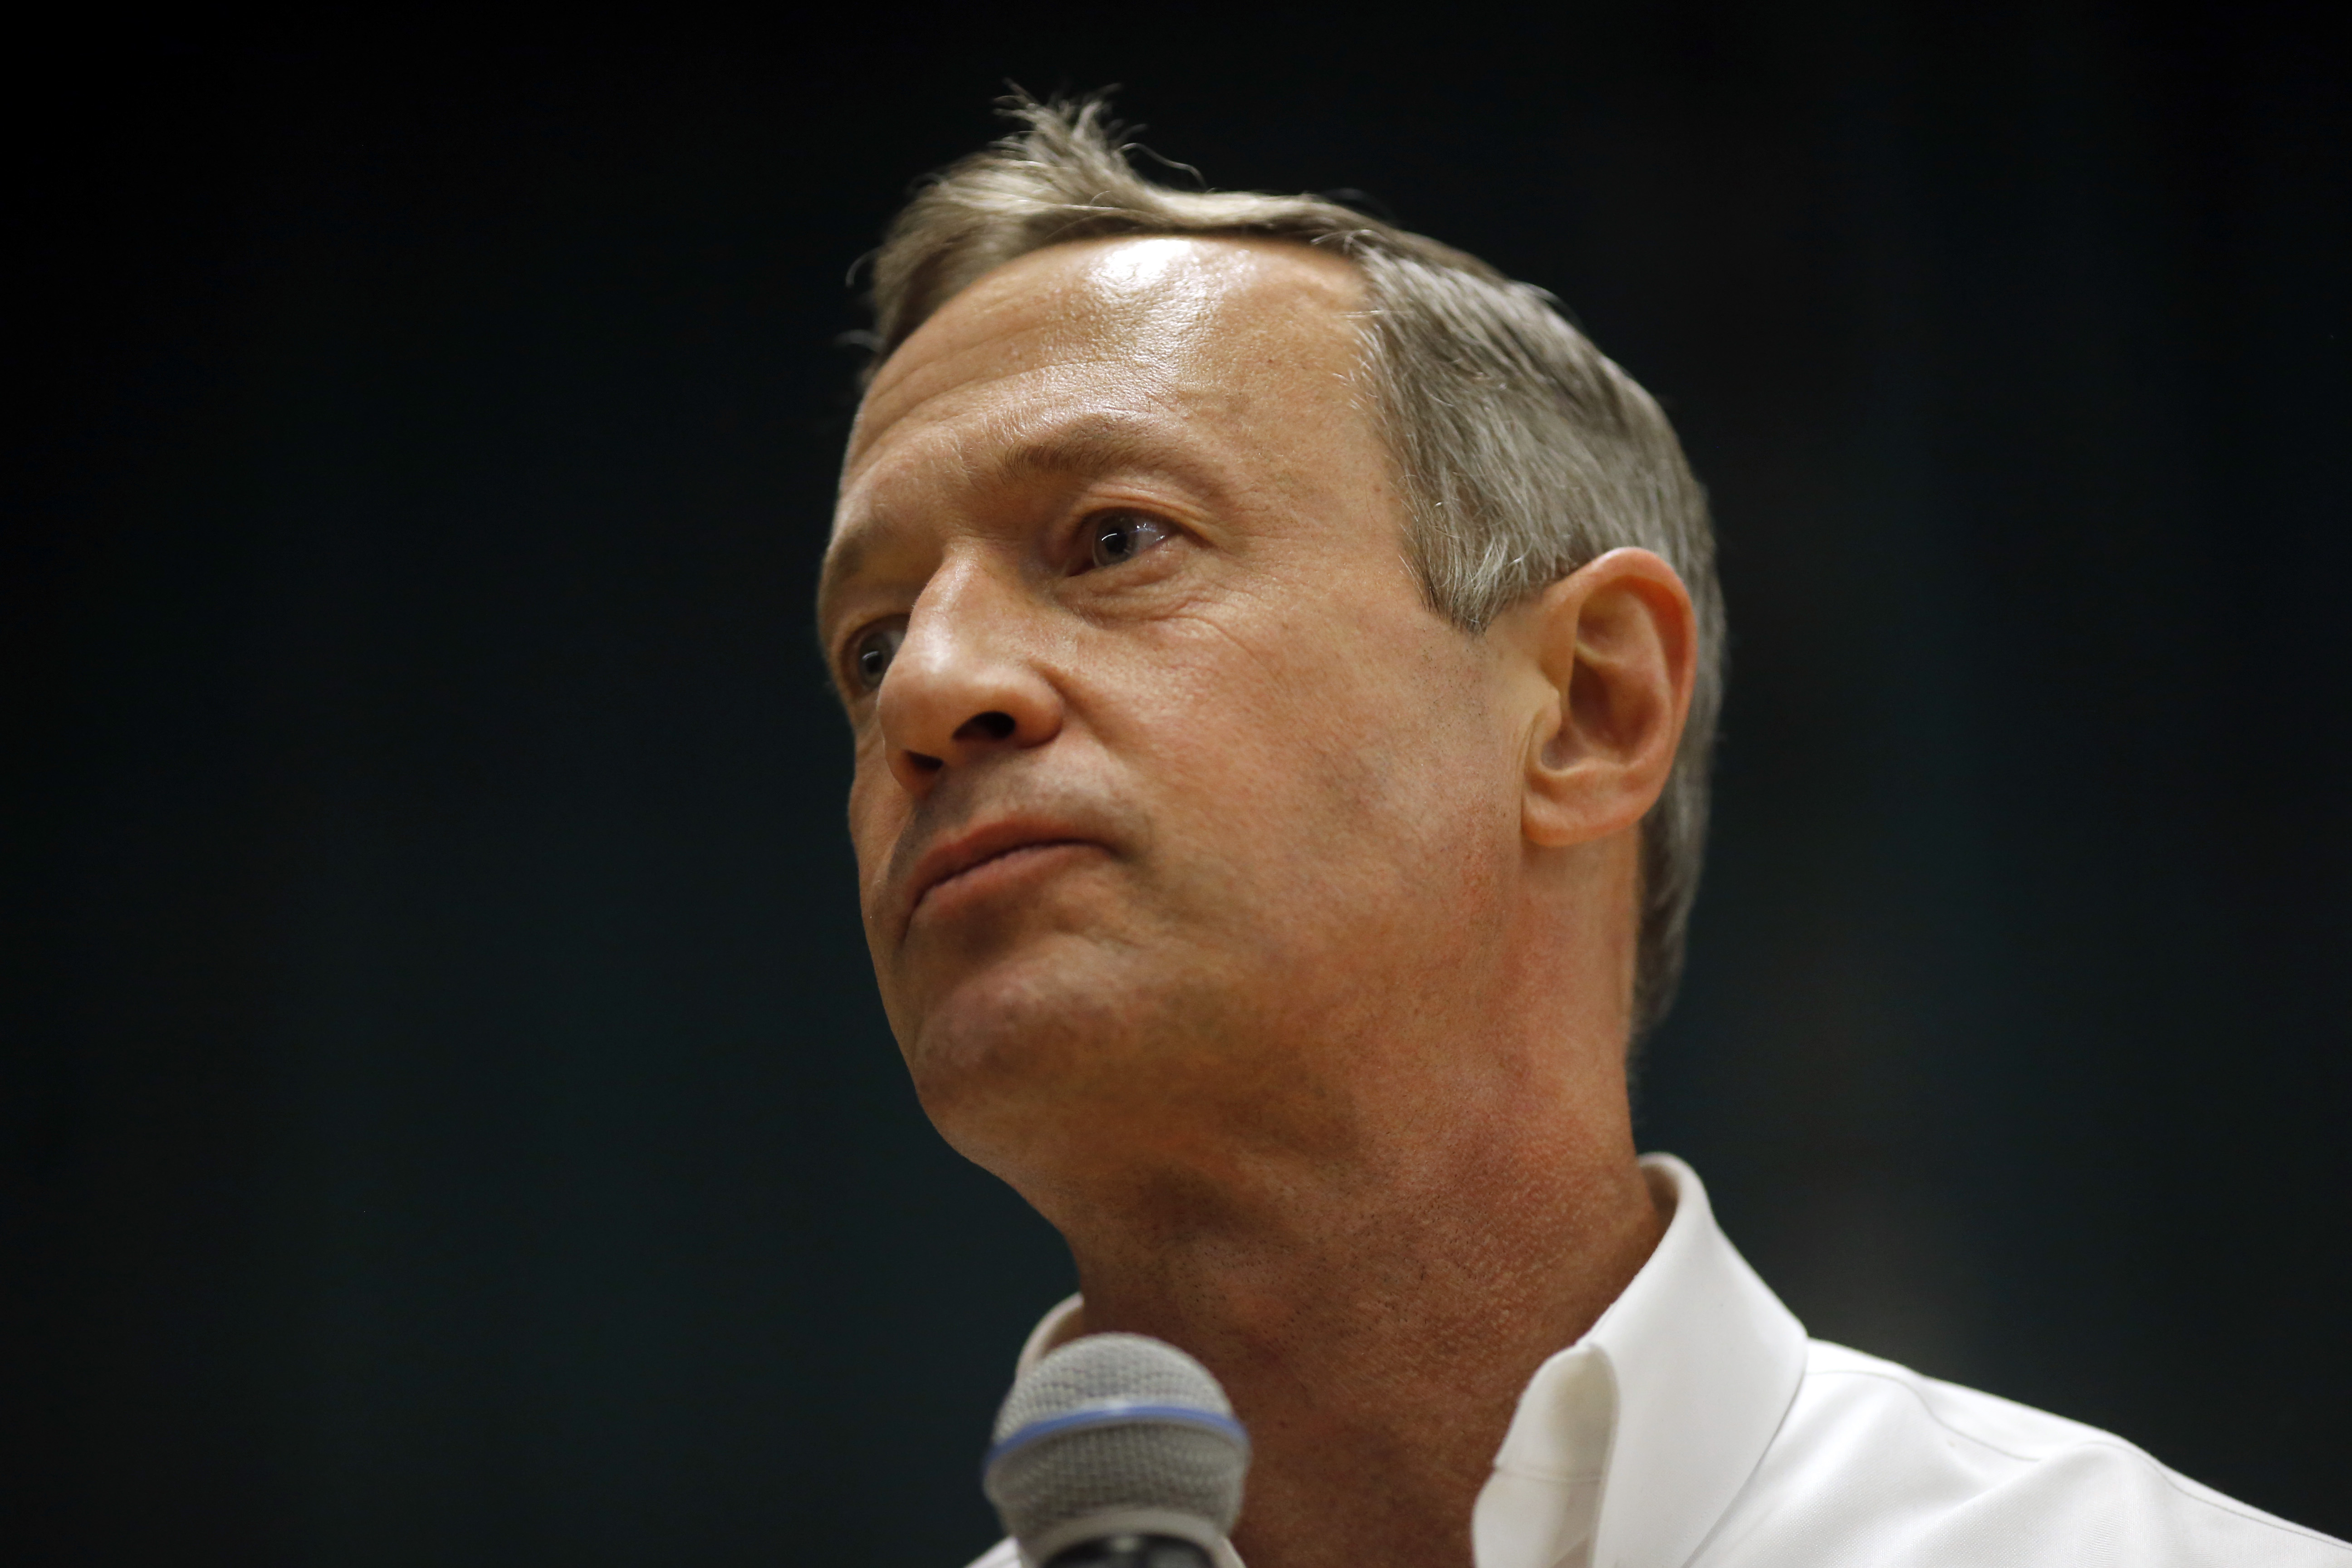 Ken Cuccinelli decries Martin O'Malley's bigoted attack on Trump, immigration policy at D.C. bar